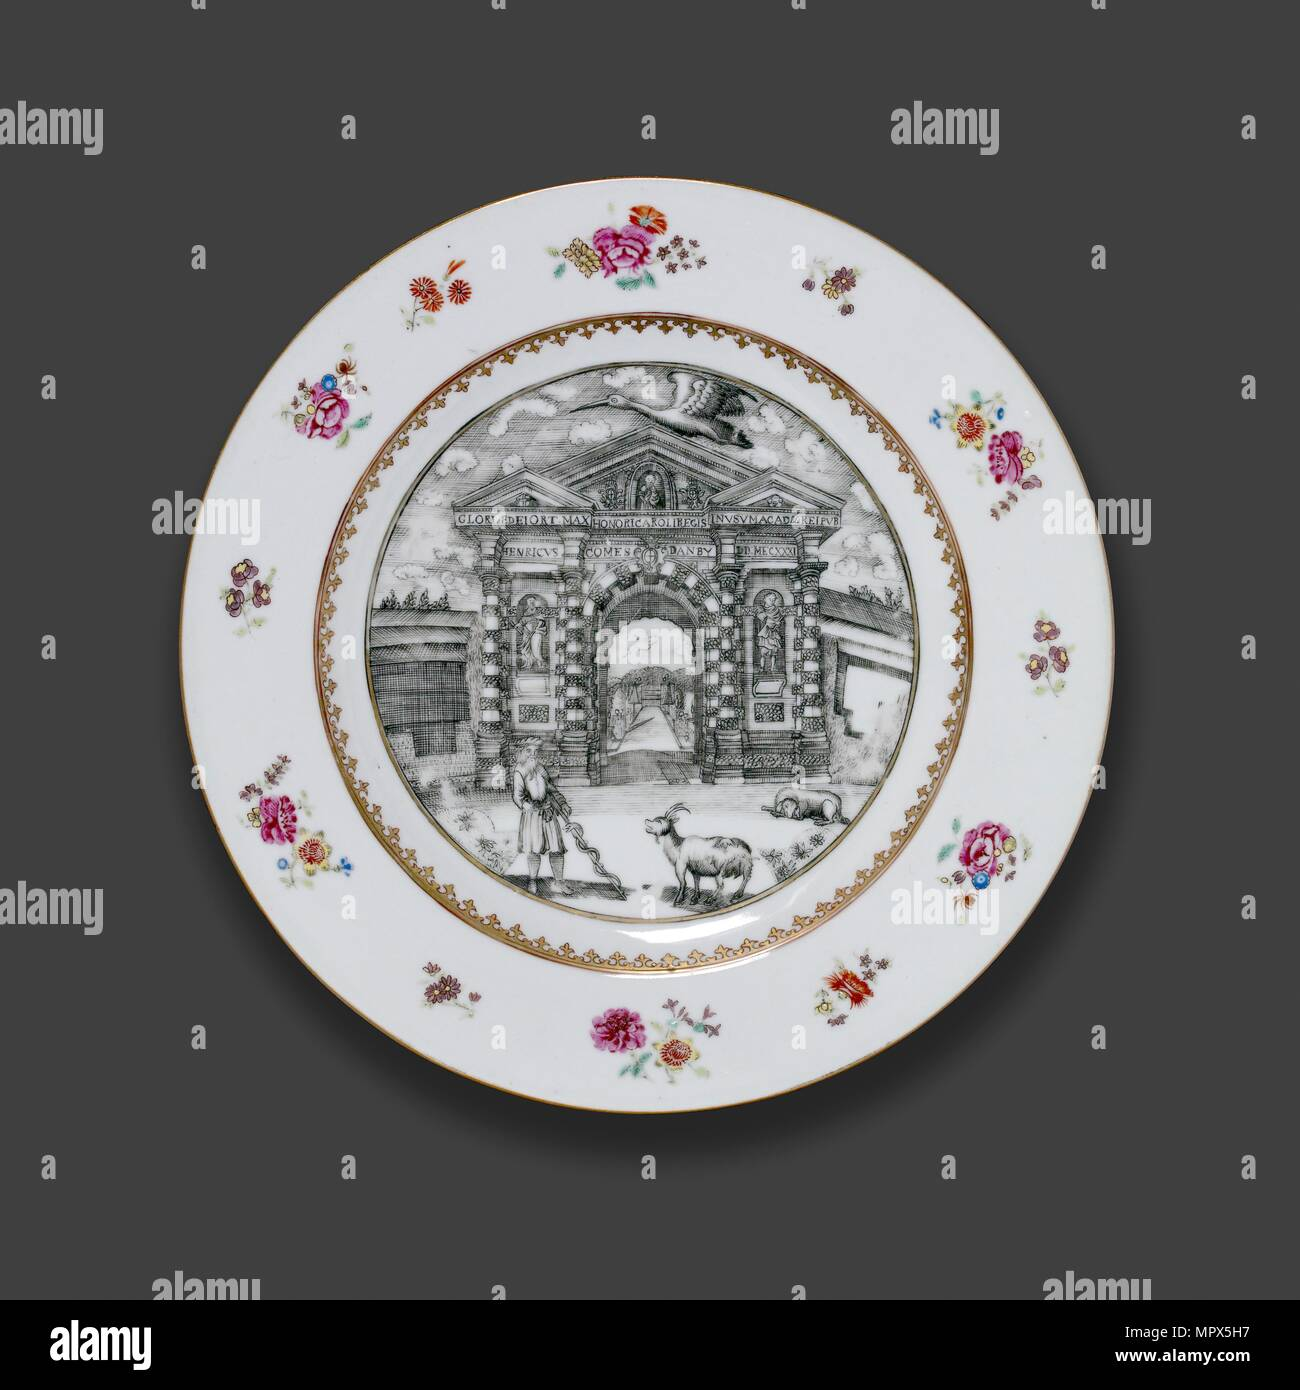 Oxford plate, c1755. Artist: Michael Burghers. - Stock Image